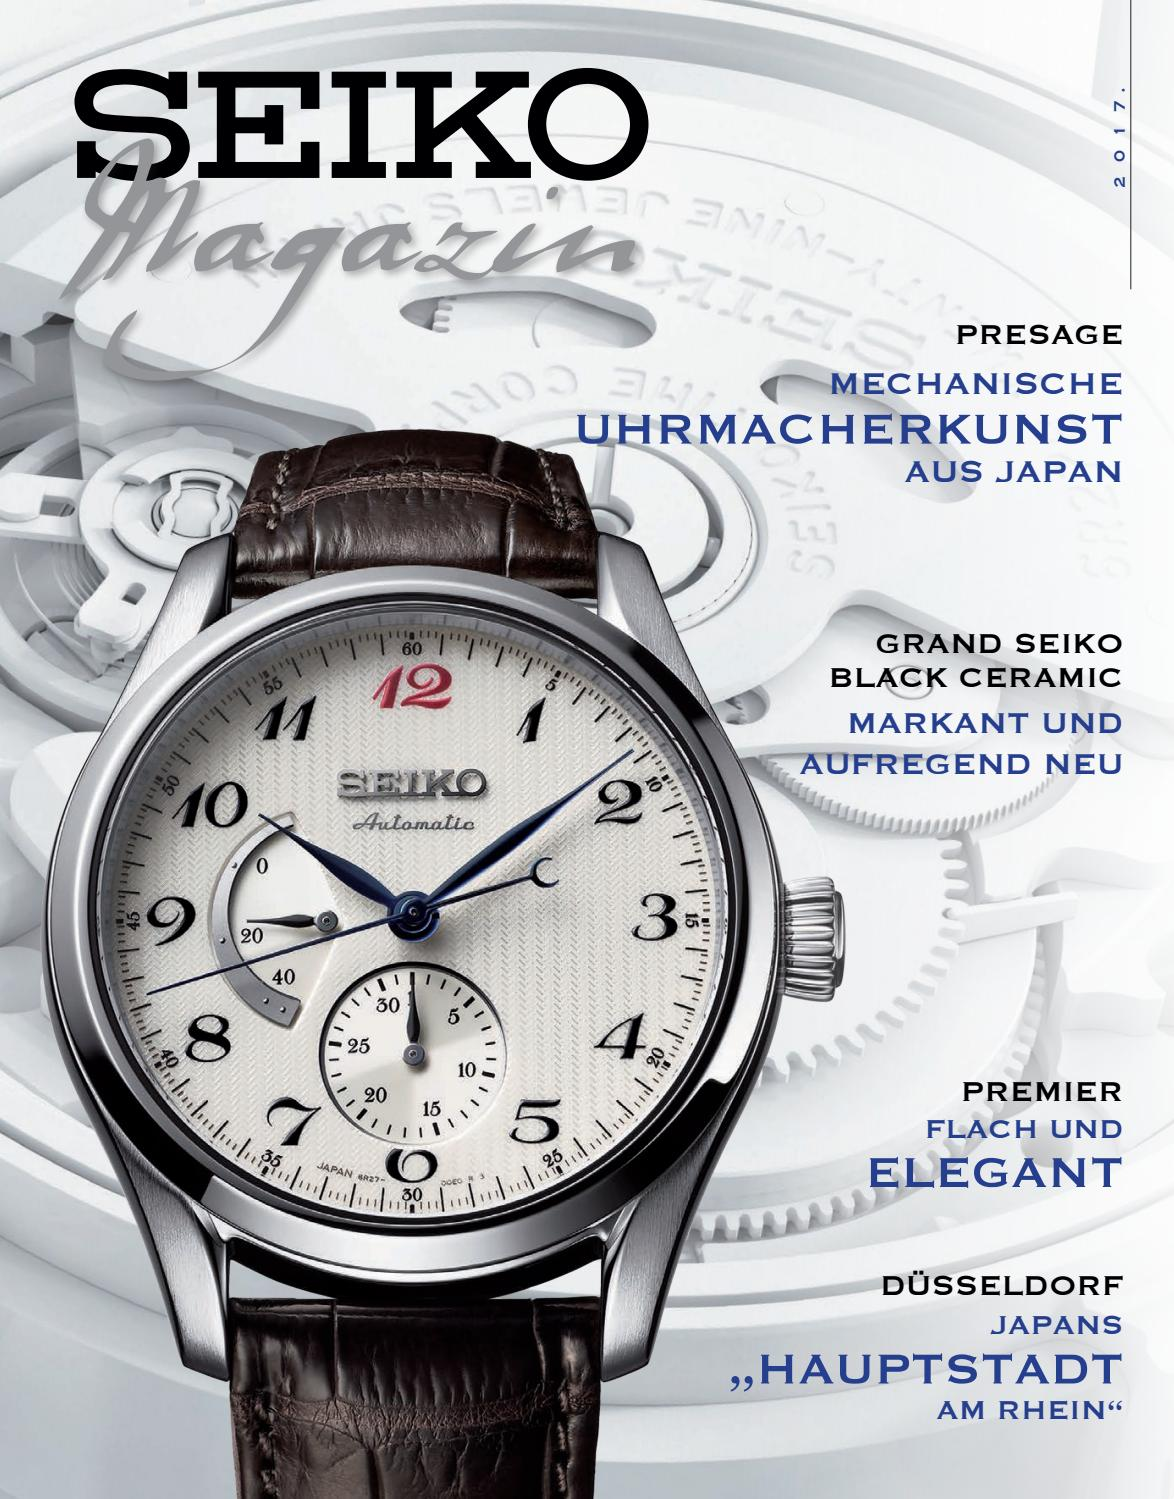 Seiko Magazin 2017 by SEIKO - issuu